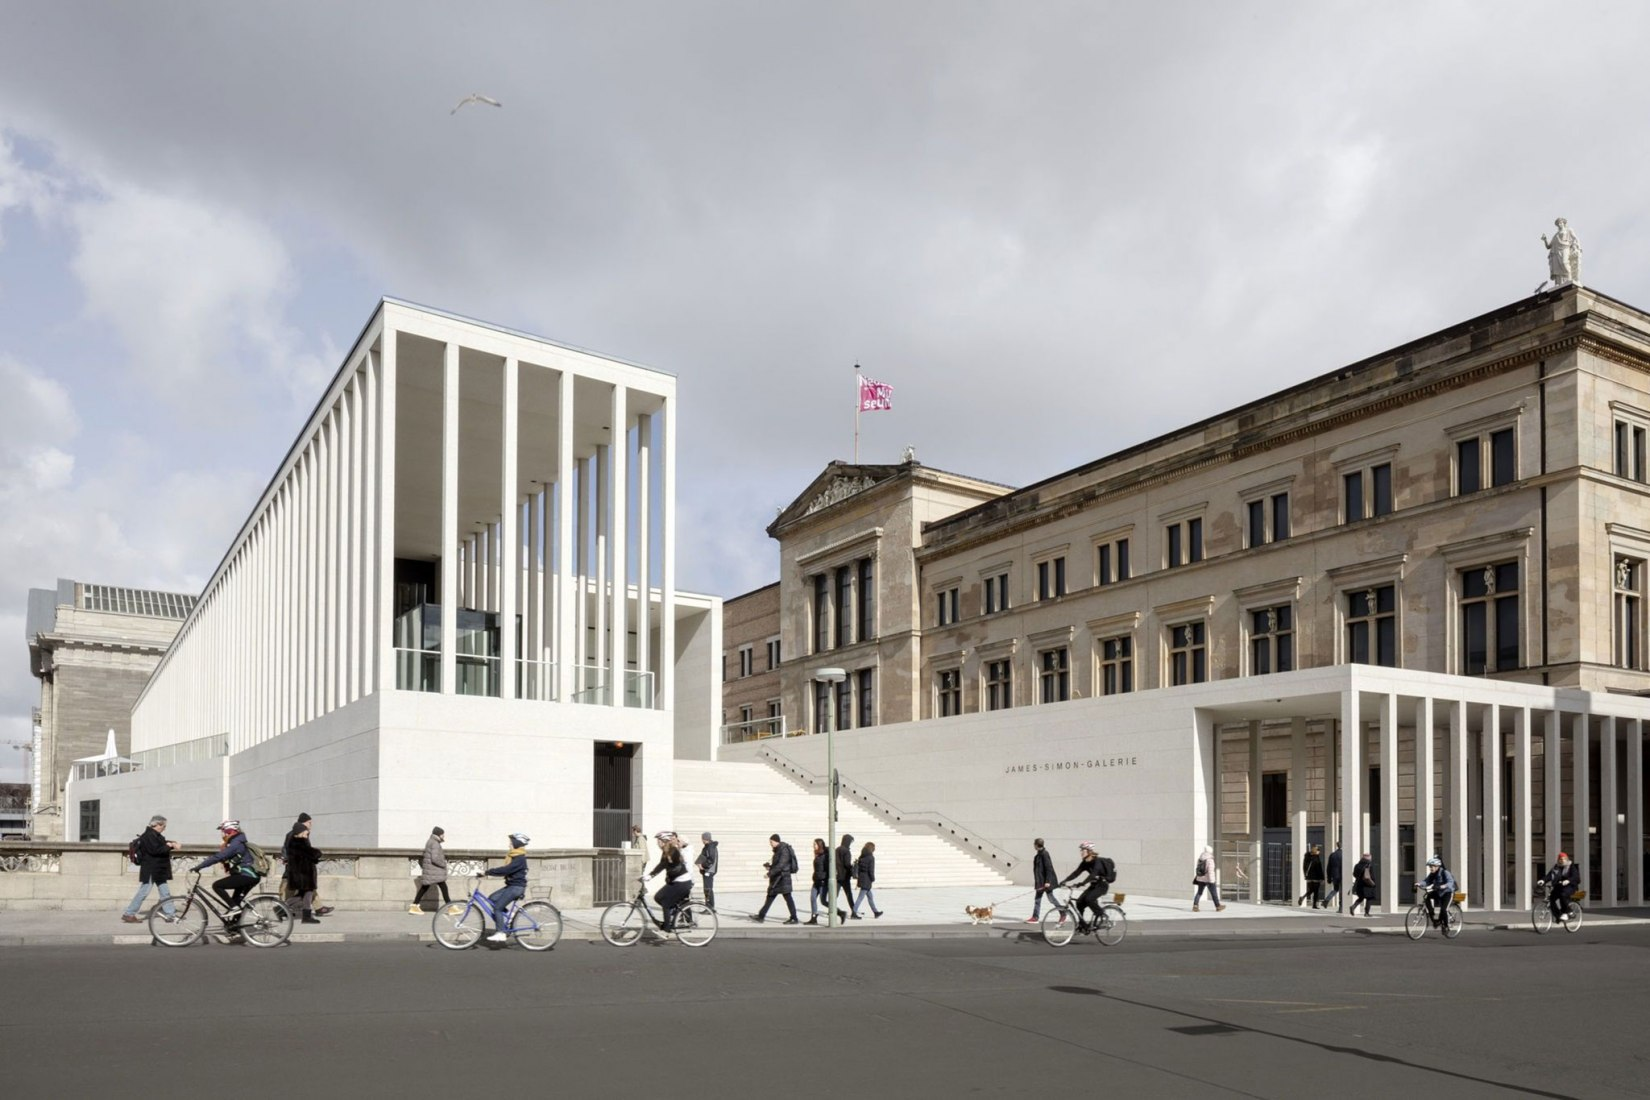 James-Simon-Galerie, Museumsinsel, Berlin by David Chipperfield Architects. Photograph by Ute Zscharnt.